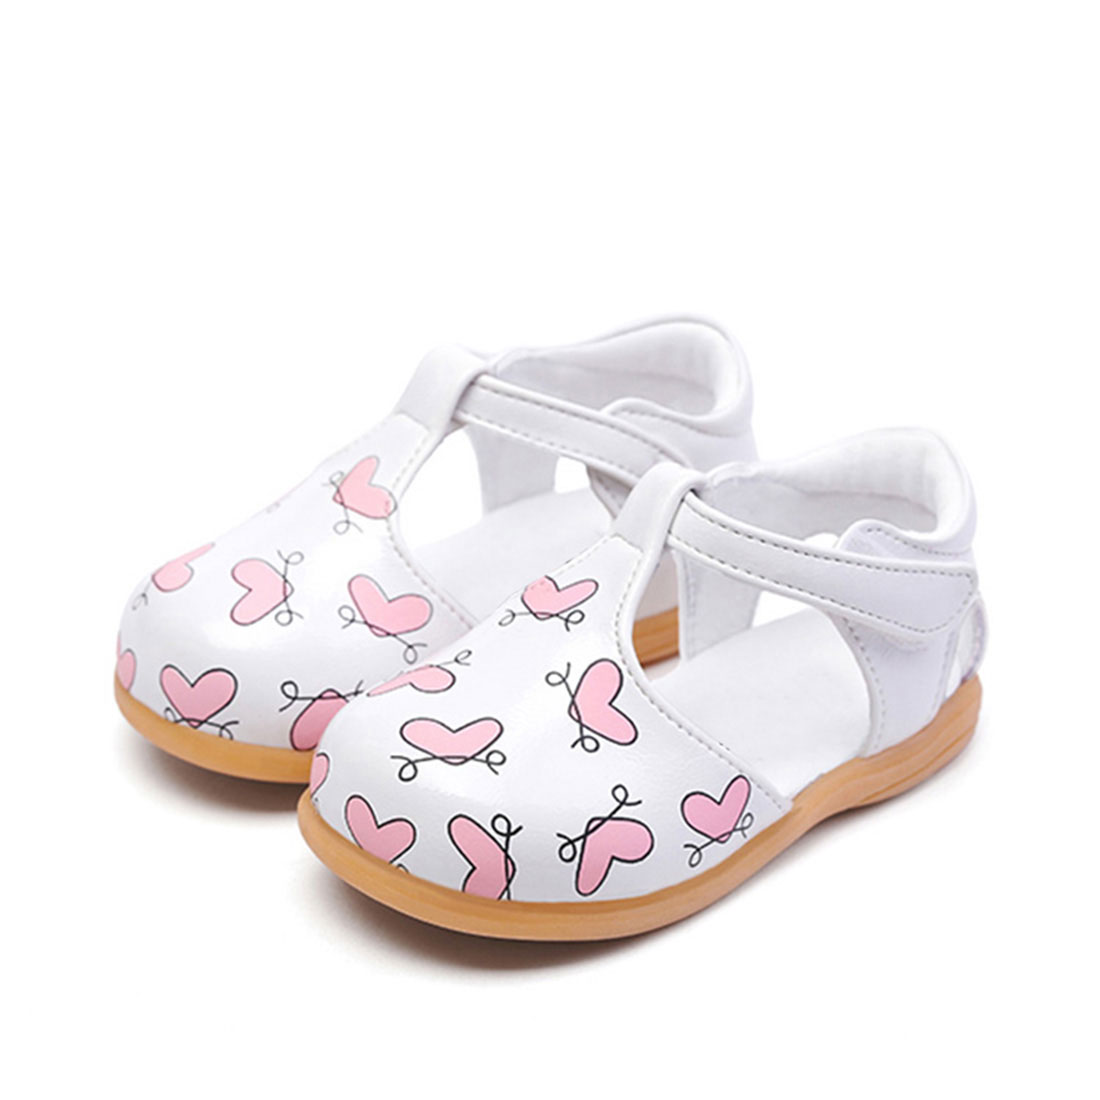 Wholesale china factory leather white flat cute summer fashion kids shoe sandals